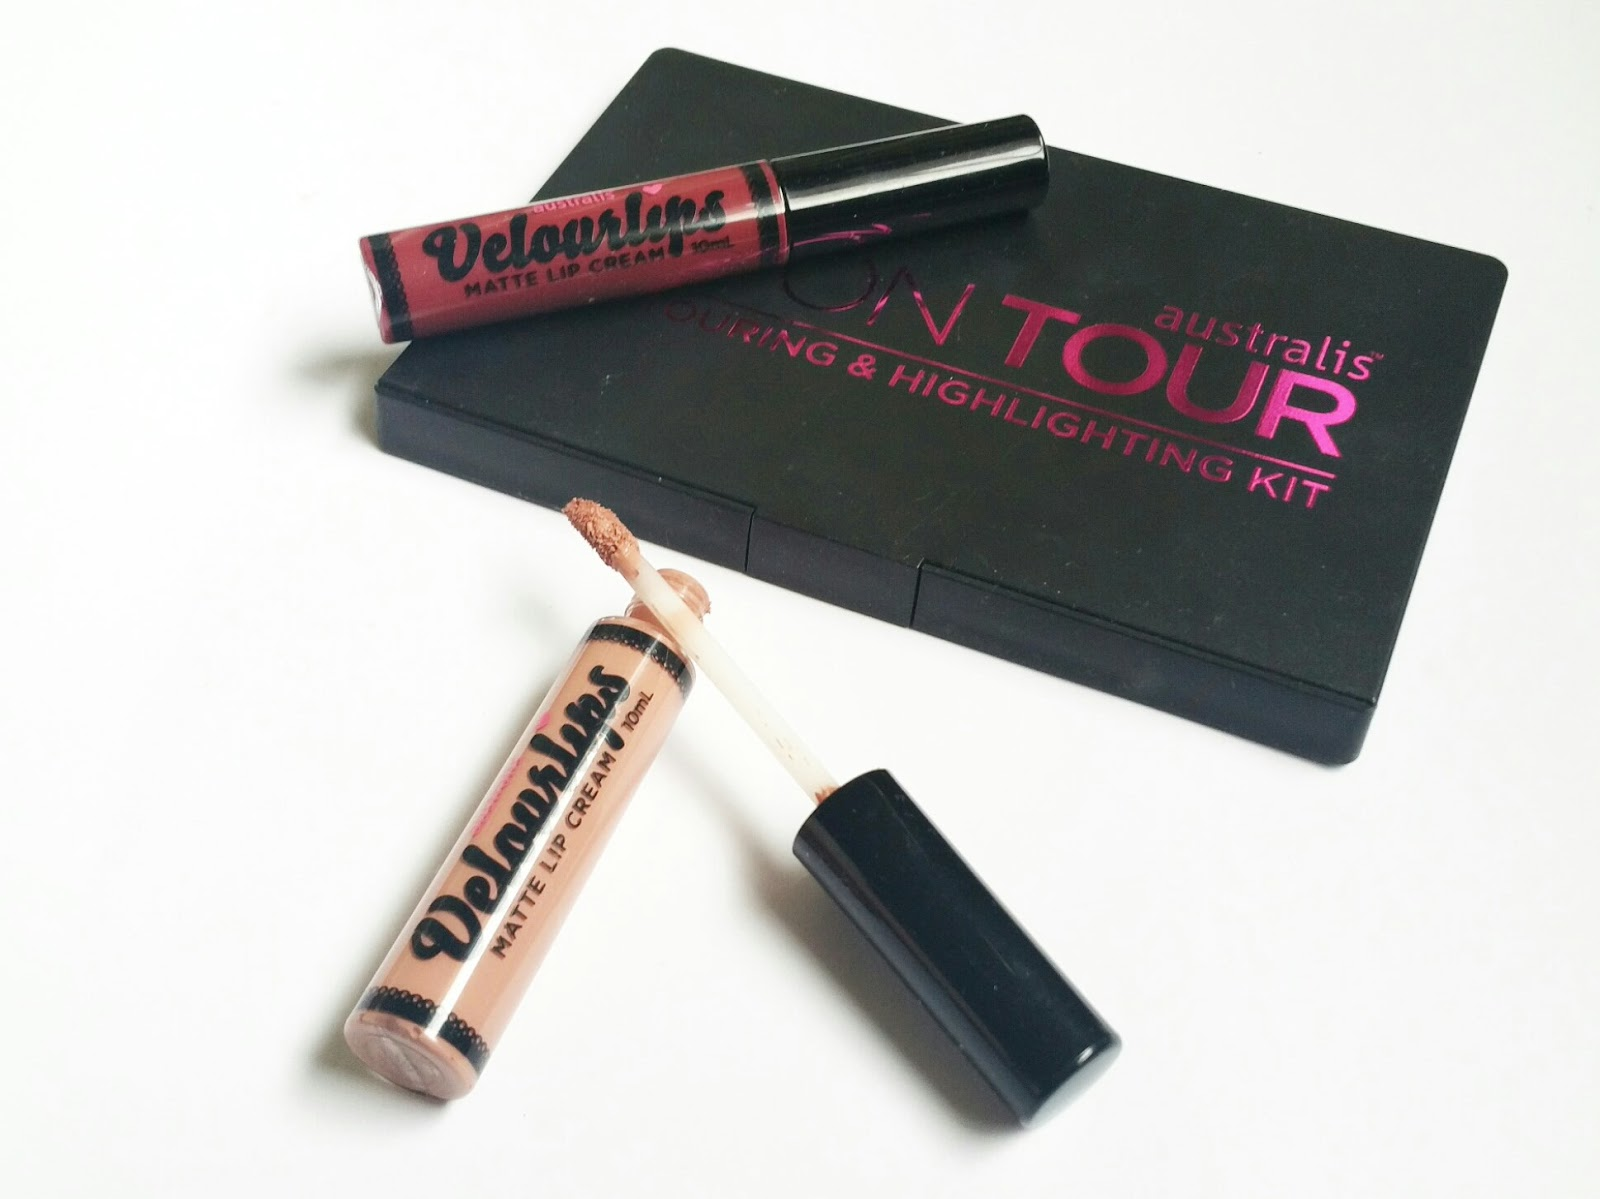 ebca8ff97c4 Australis Velourlips Matte Lip Creams come in a range of 15 intense colours  and are packaged in small hard plastic tubes with a doe foot applicator.